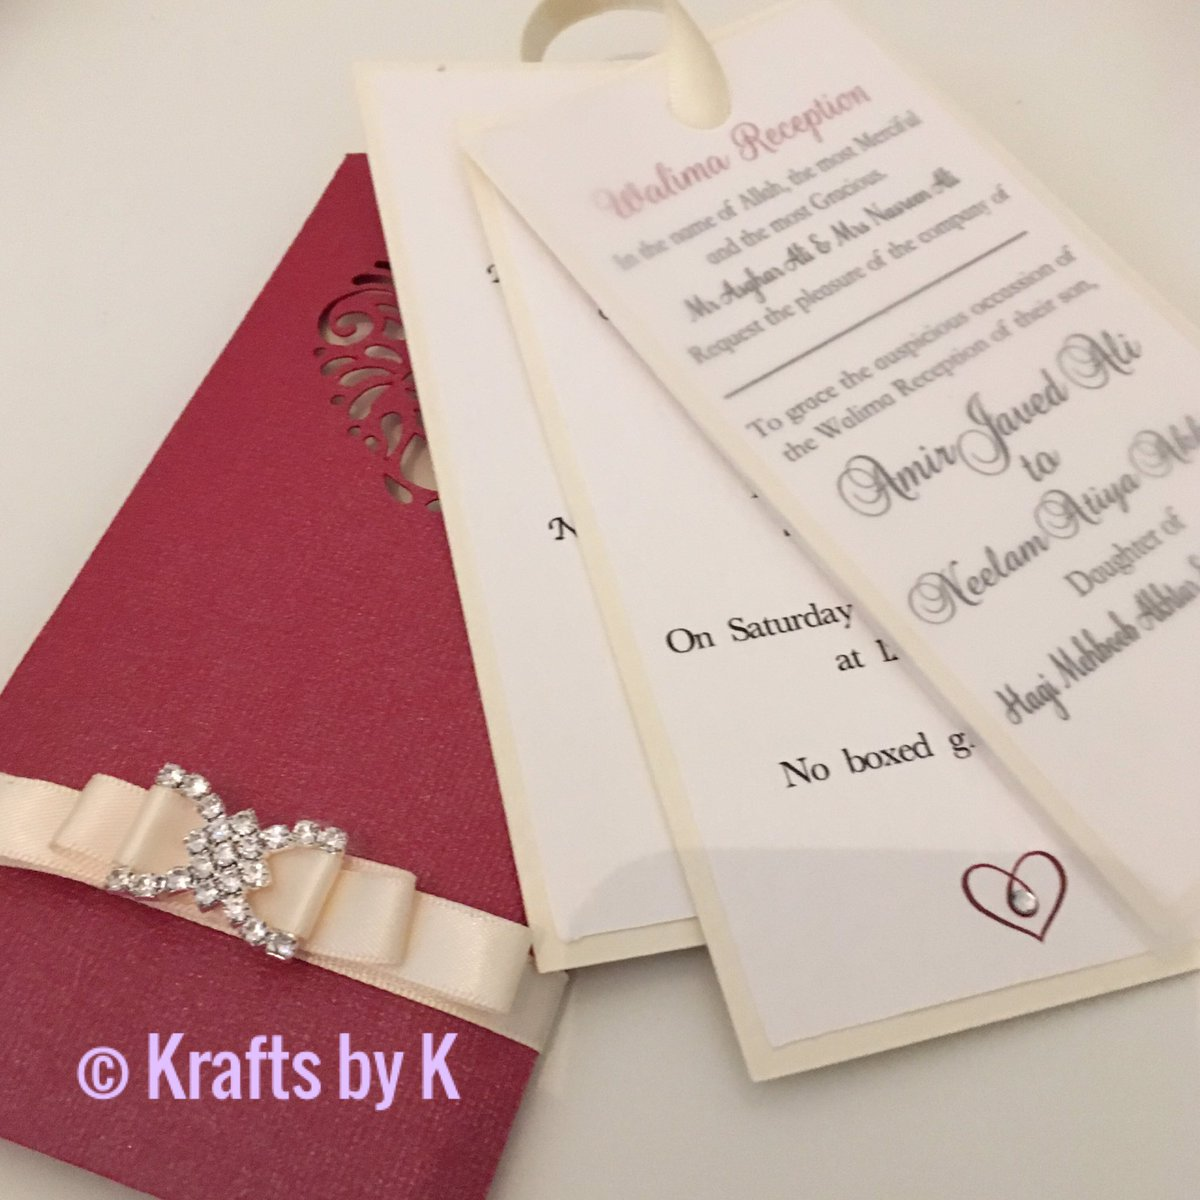 Kerry mccabe kerrybaps twitter my first attempt at wedding invitations using exoticred linen cardstock from hobbycraftcdf hobbycraftnwppicitterzagvujtaz9 monicamarmolfo Image collections